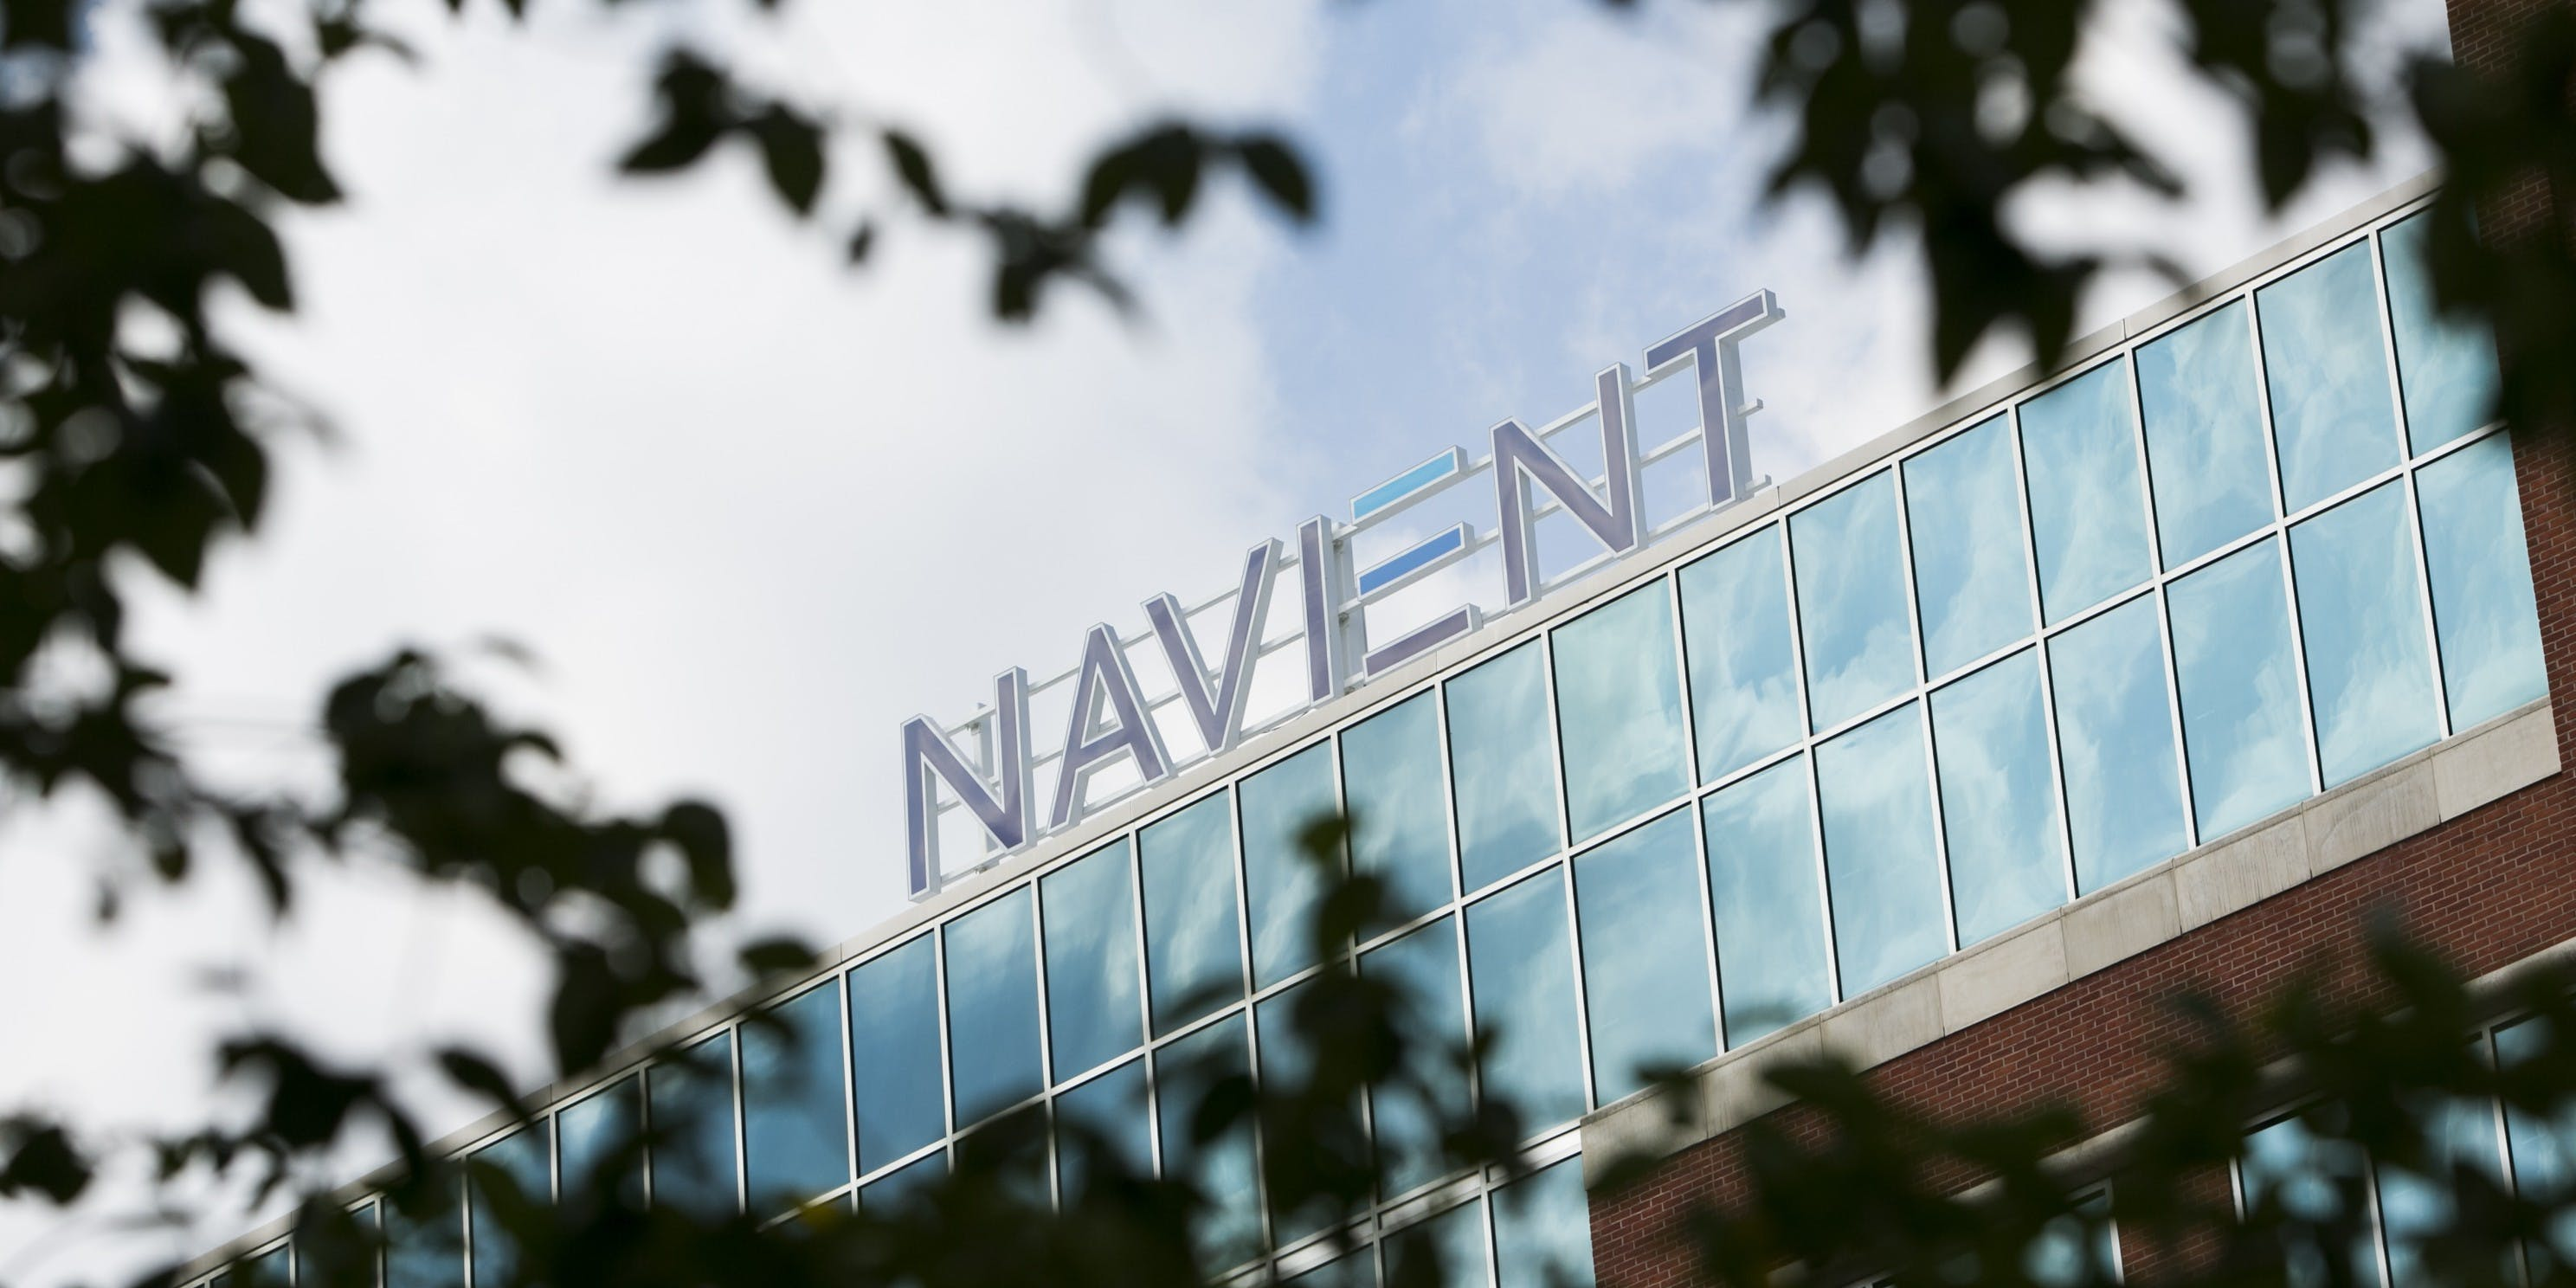 Student Loan Giant Navient Responds to Allegations of Abuse With a Bizarre Subpoena of a Former Federal Official